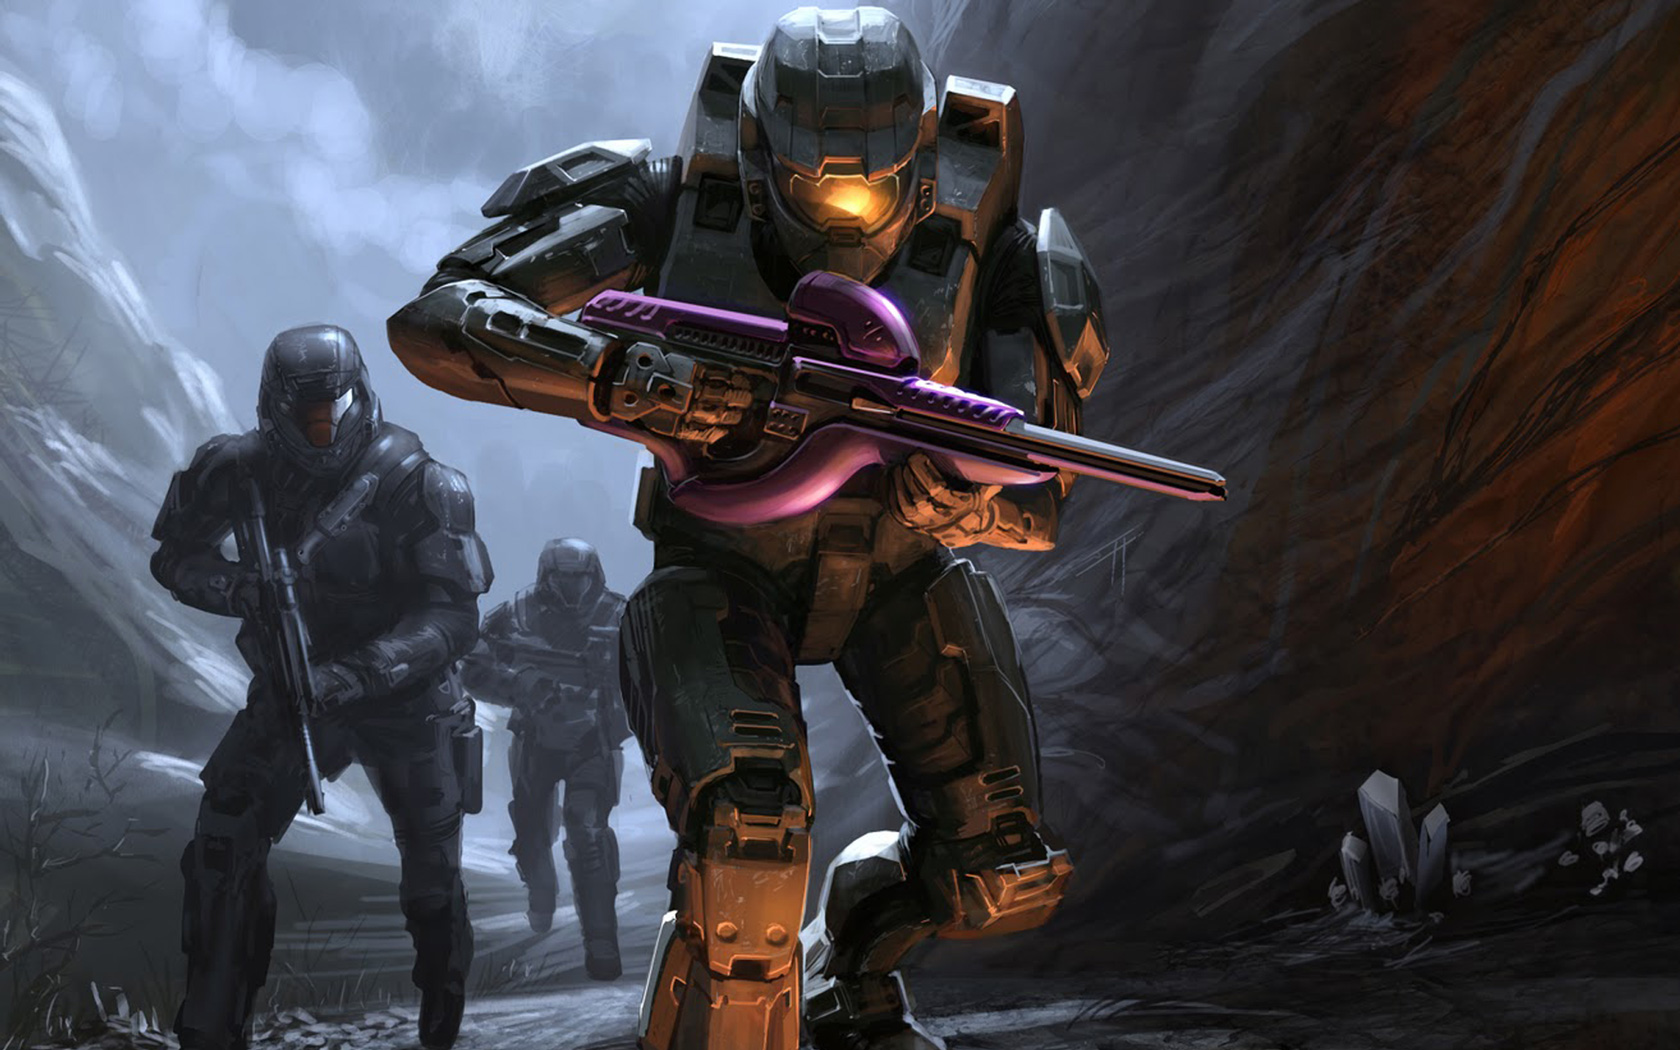 Free Halo Wallpaper in 1680x1050